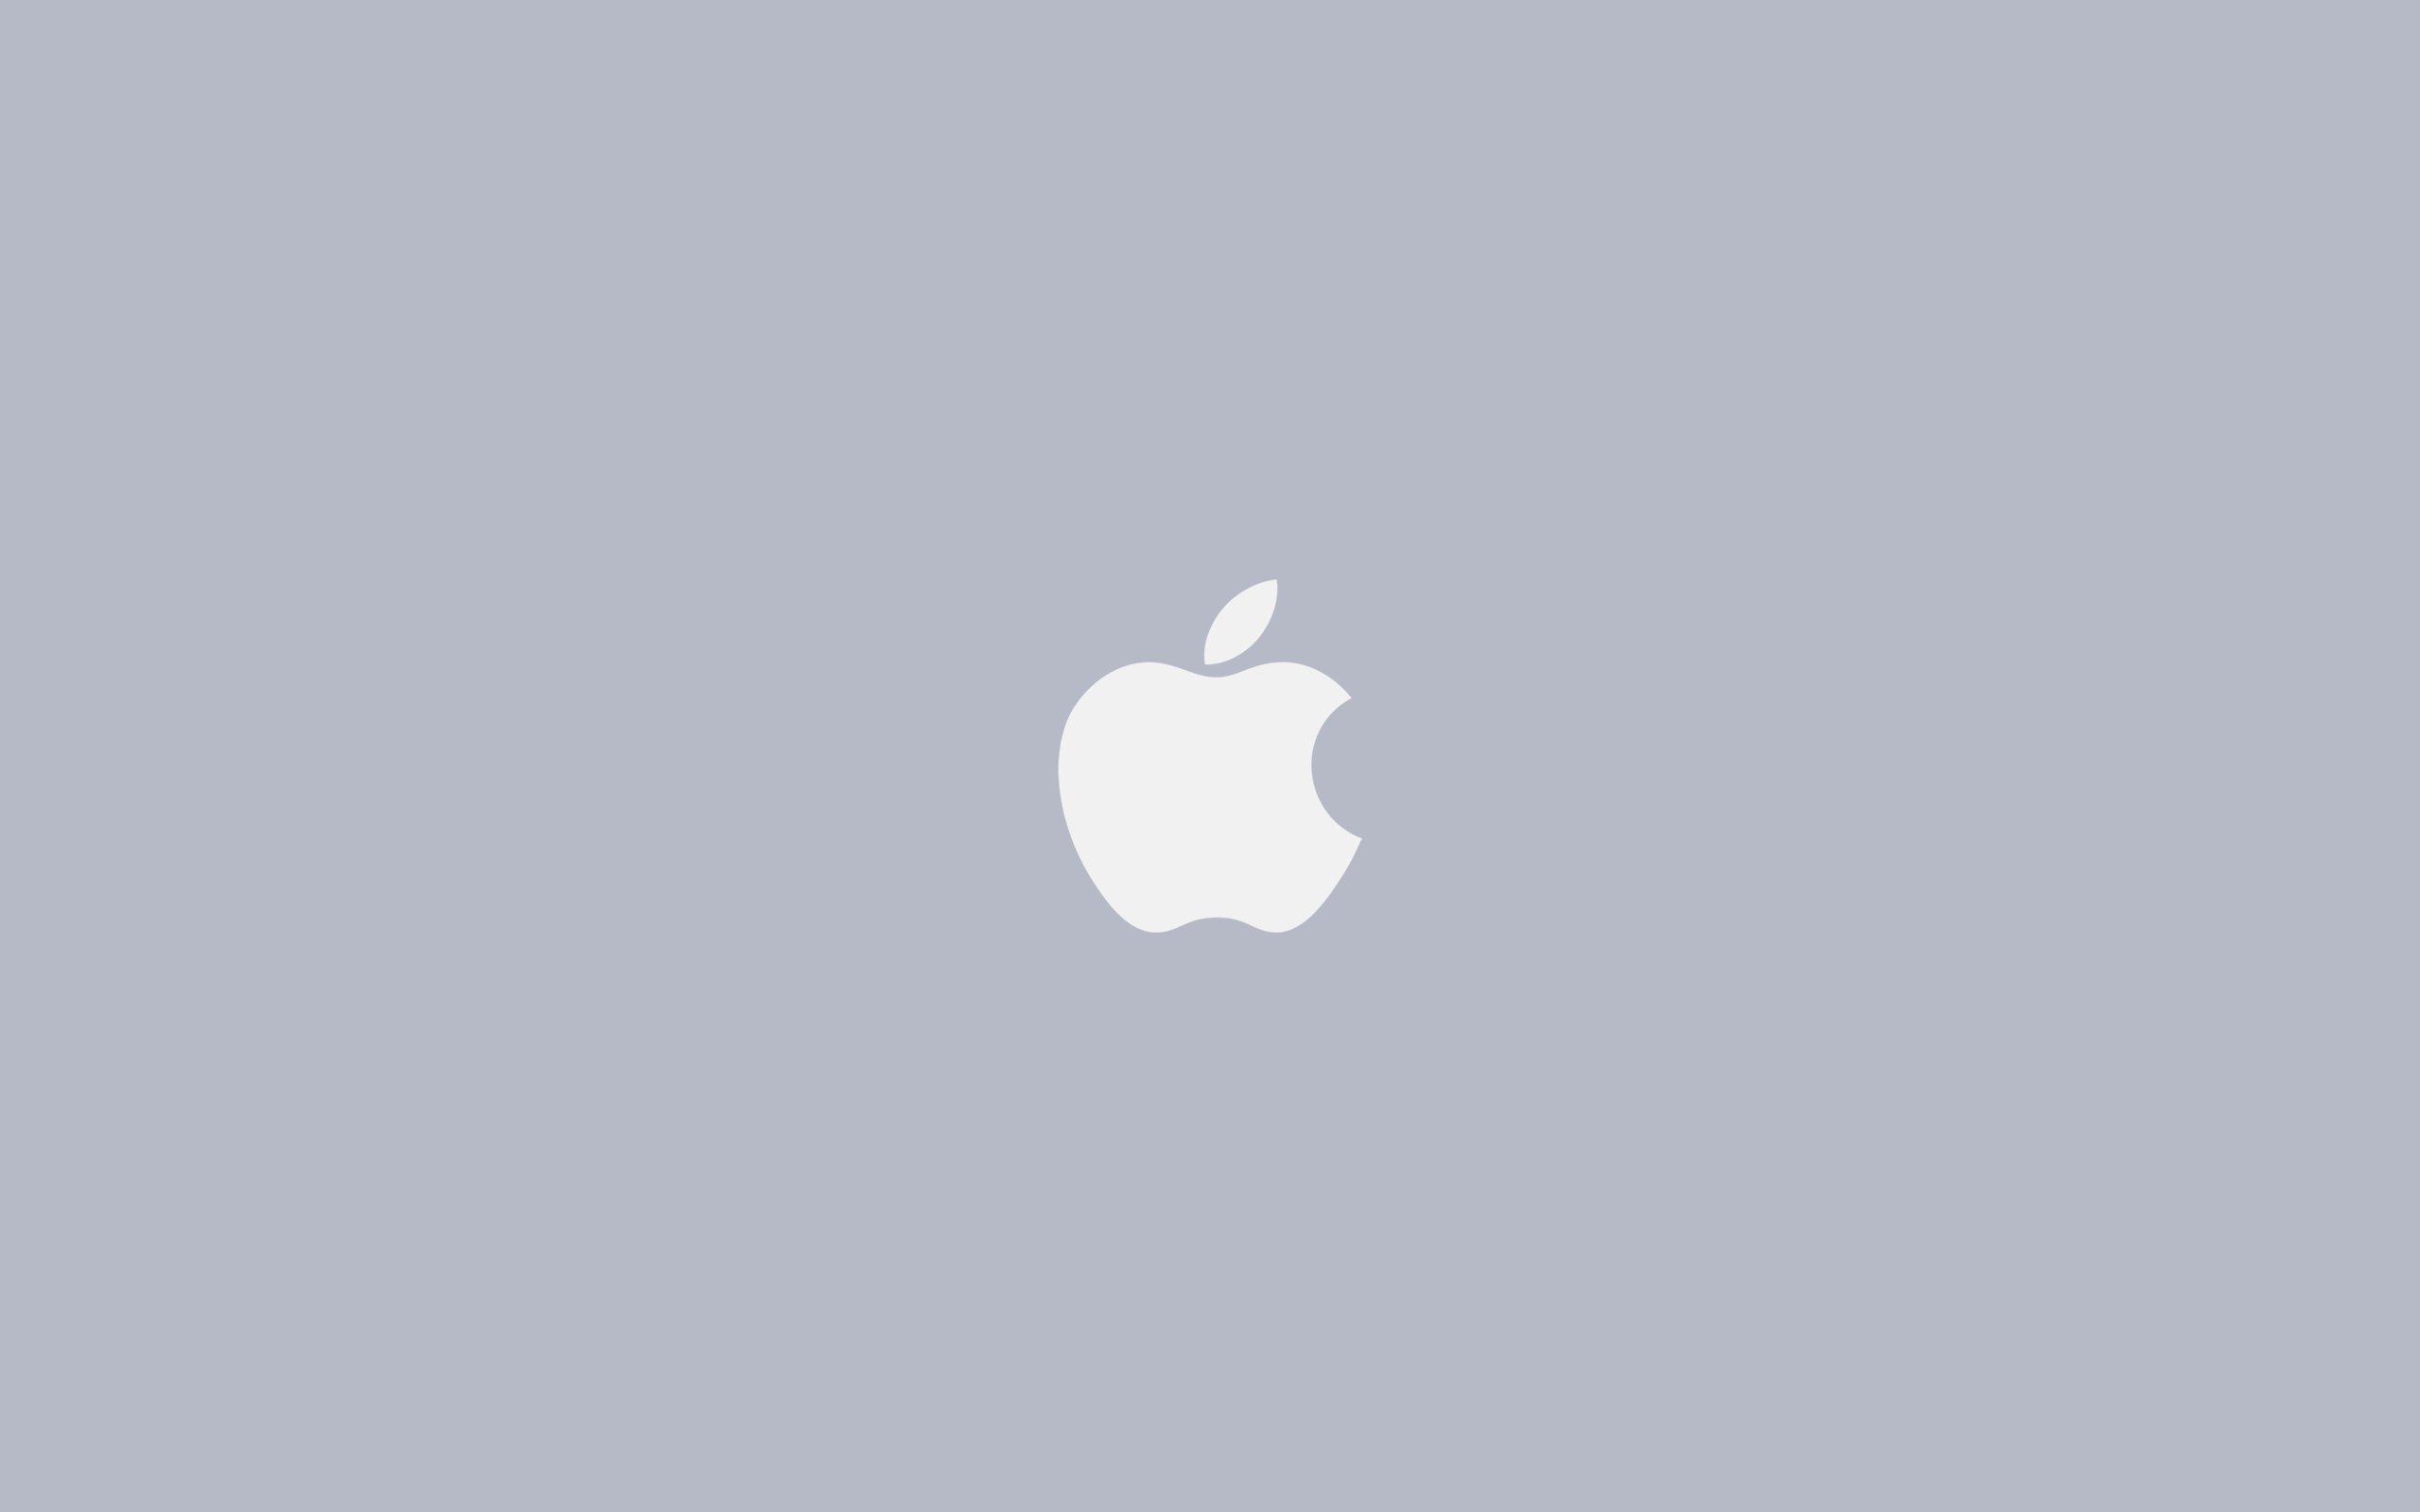 Apple Logo Grey - Minimal Desktop Wallpaper